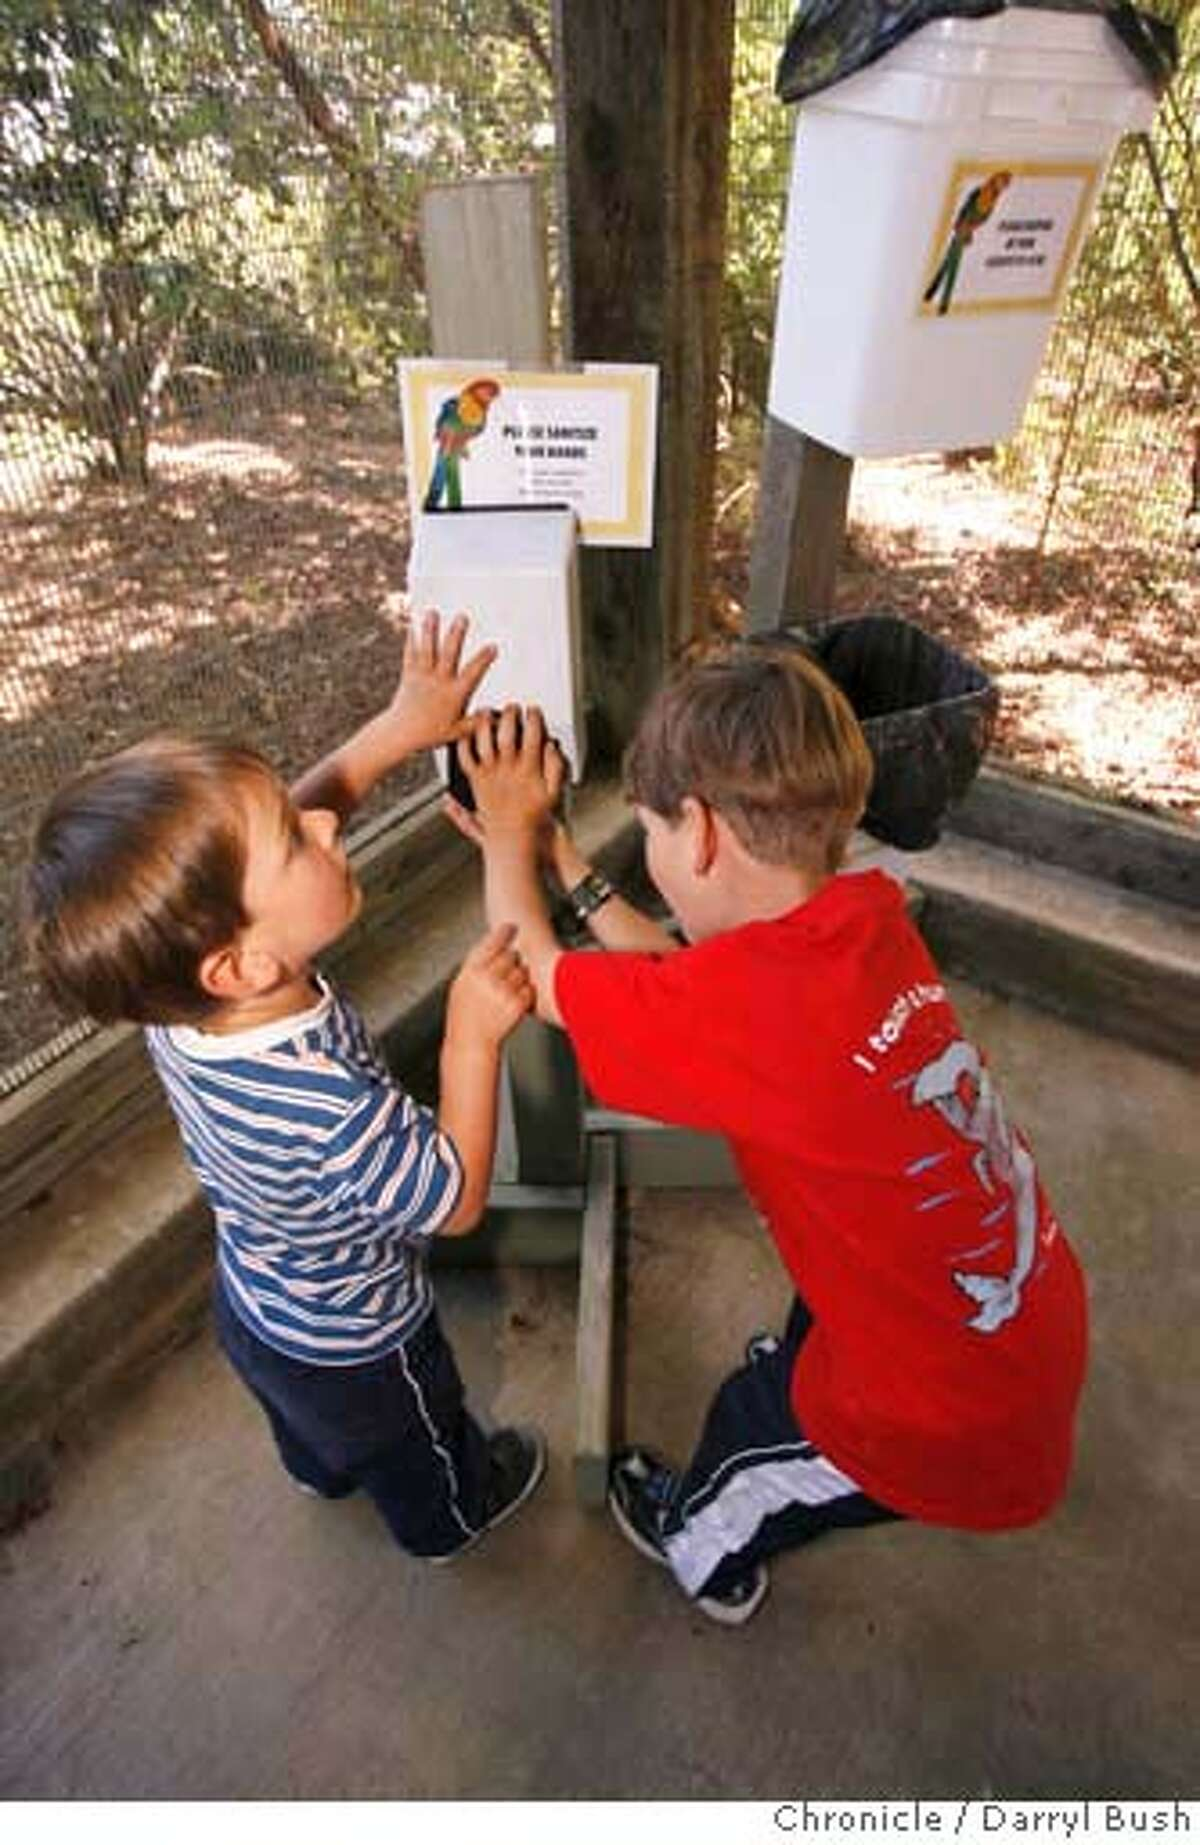 """binnowee_007_db.JPG Zoo visitors, Zachary Colety, 3, and brother Joshua Colety, 5, right, both of San Francisco, begin to wash their hands with sanitizing foam from a dispenser as they leave the walk-in aviary called, """"Binnowee Landing,"""" where they hand fed Australian birds at San Francisco Zoo in San Francisco, CA on Thursday, June 15, 2006. shot: 6/15/06 Darryl Bush / The Chronicle **Zachary and Joshua Colety (cq)"""